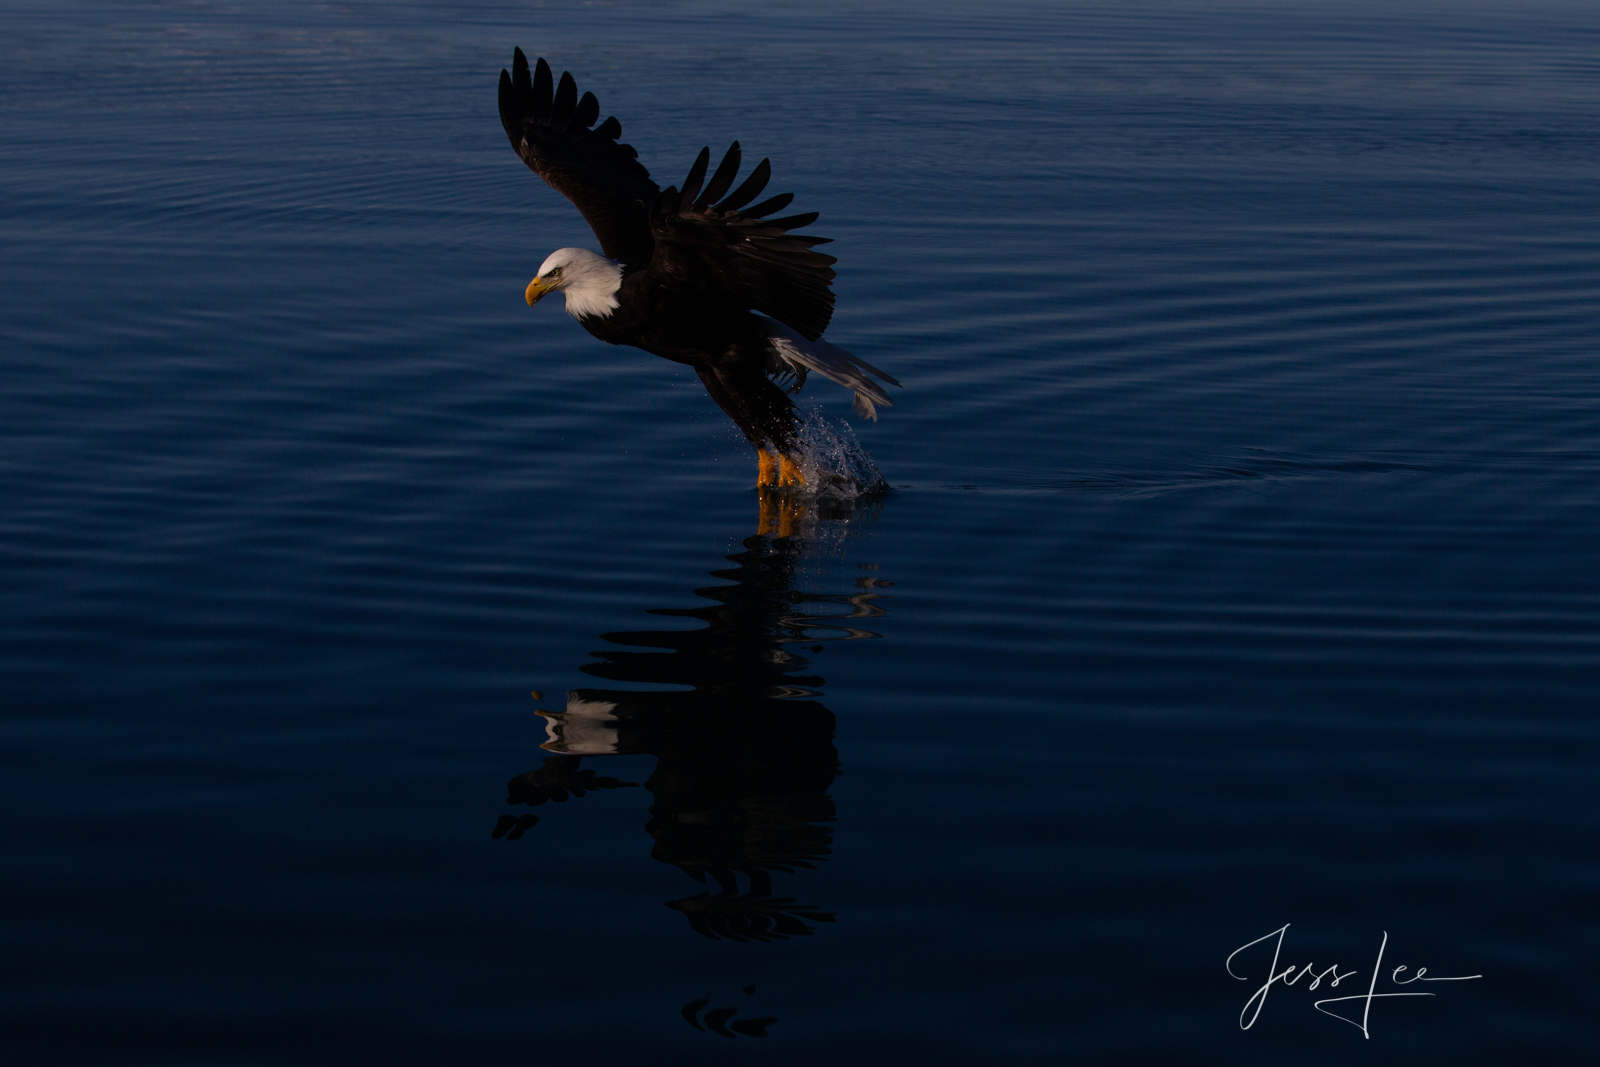 Bring home the power and beauty of the amazing fine art American Bald Eagle photograph The flight by Jess Lee from his Wildlife...